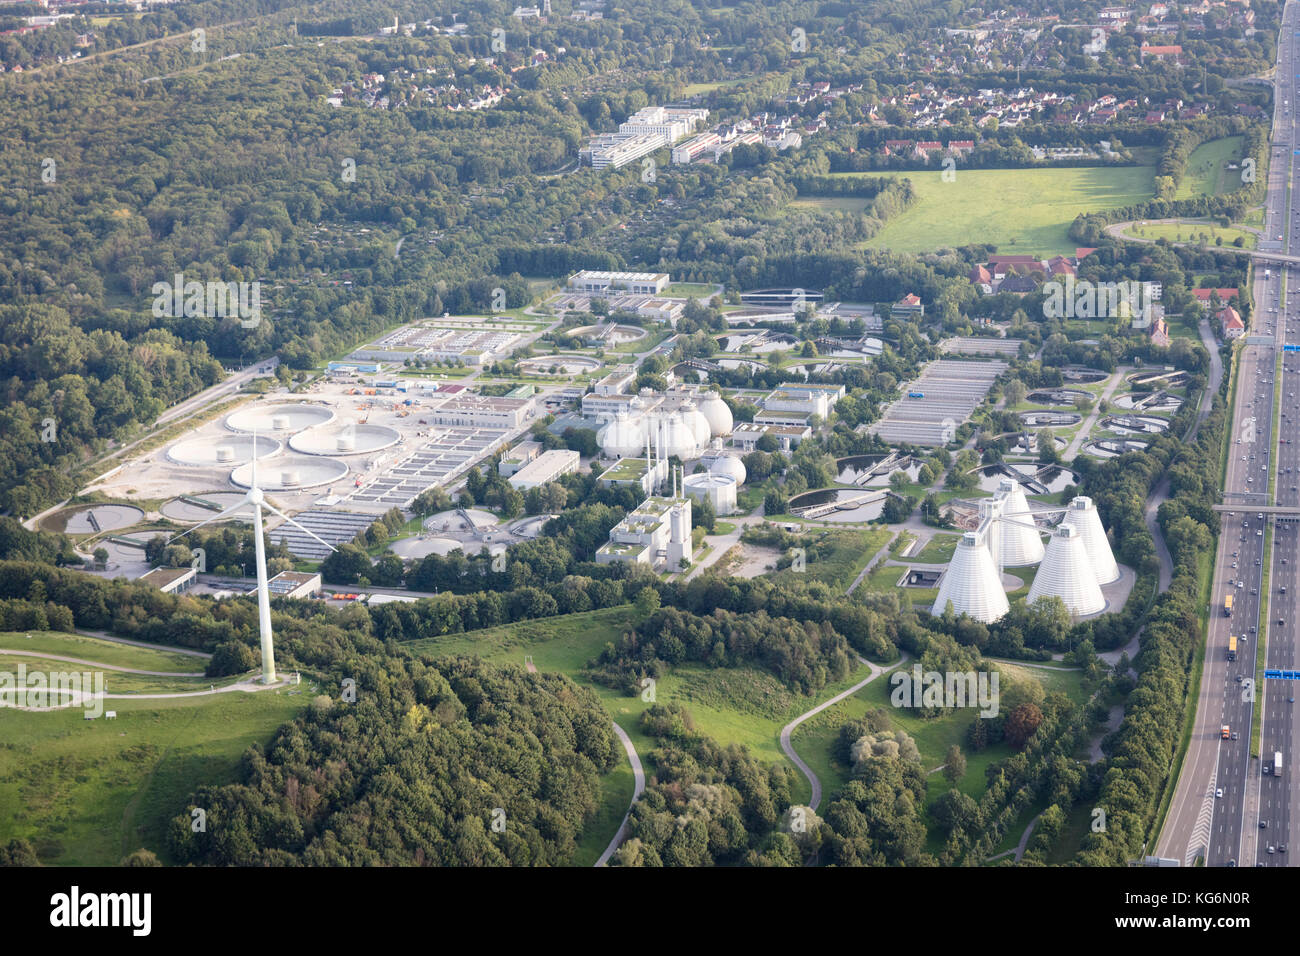 aerial view of the wastewater treatment plant Gut Großlappen, Freimann  district, Munich, Bavaria, Germany - Stock Image